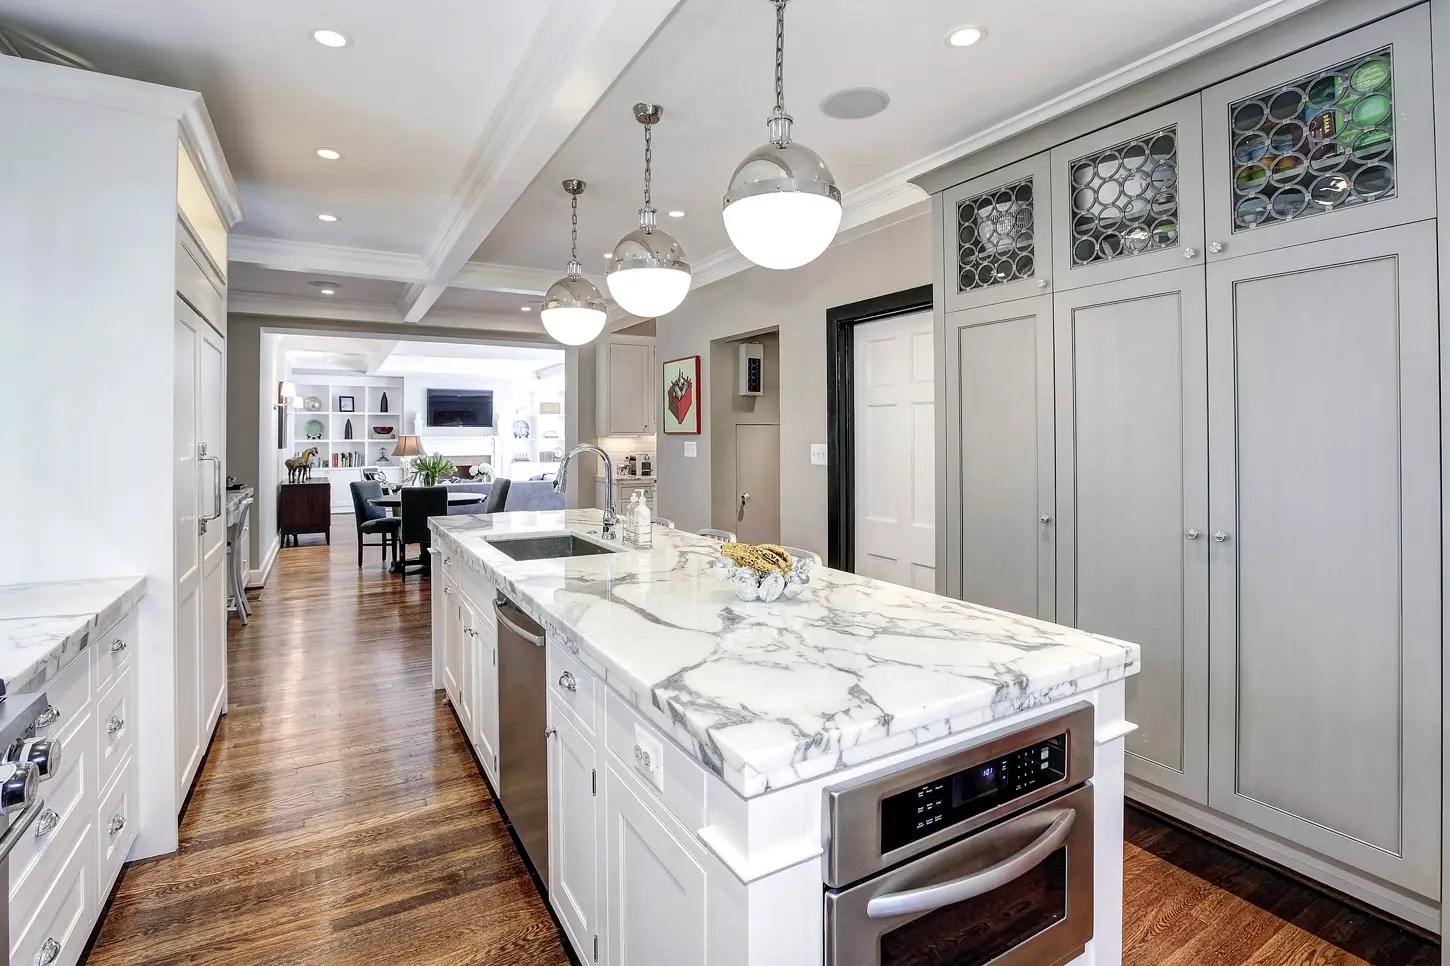 The kitchen is bright and updated, with marble countertops and luxury appliances.